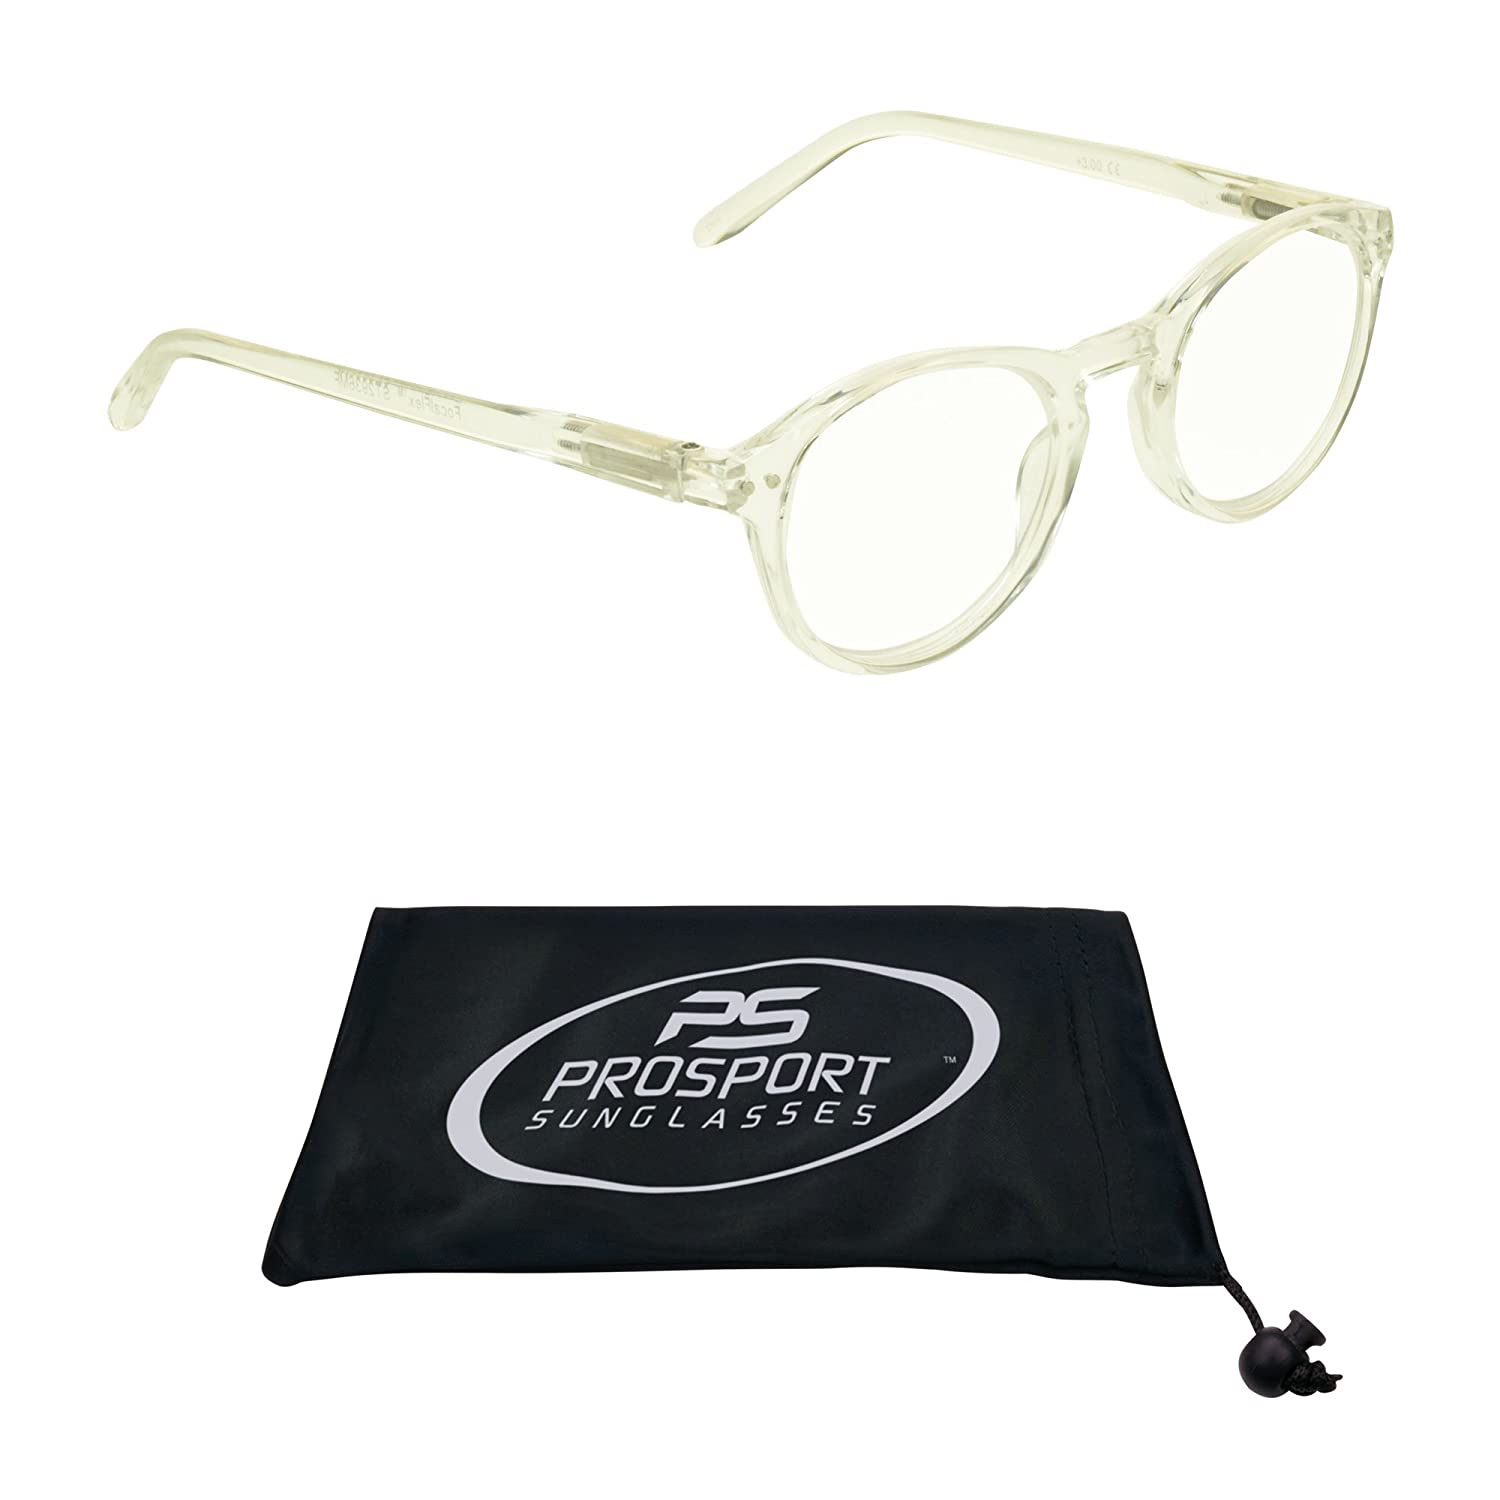 c21ab7e5375 Amazon.com  Oval Multifocal Progressive Computer Reading Glasses. Single  Pair or 2 Pairs Combo.  Health   Personal Care